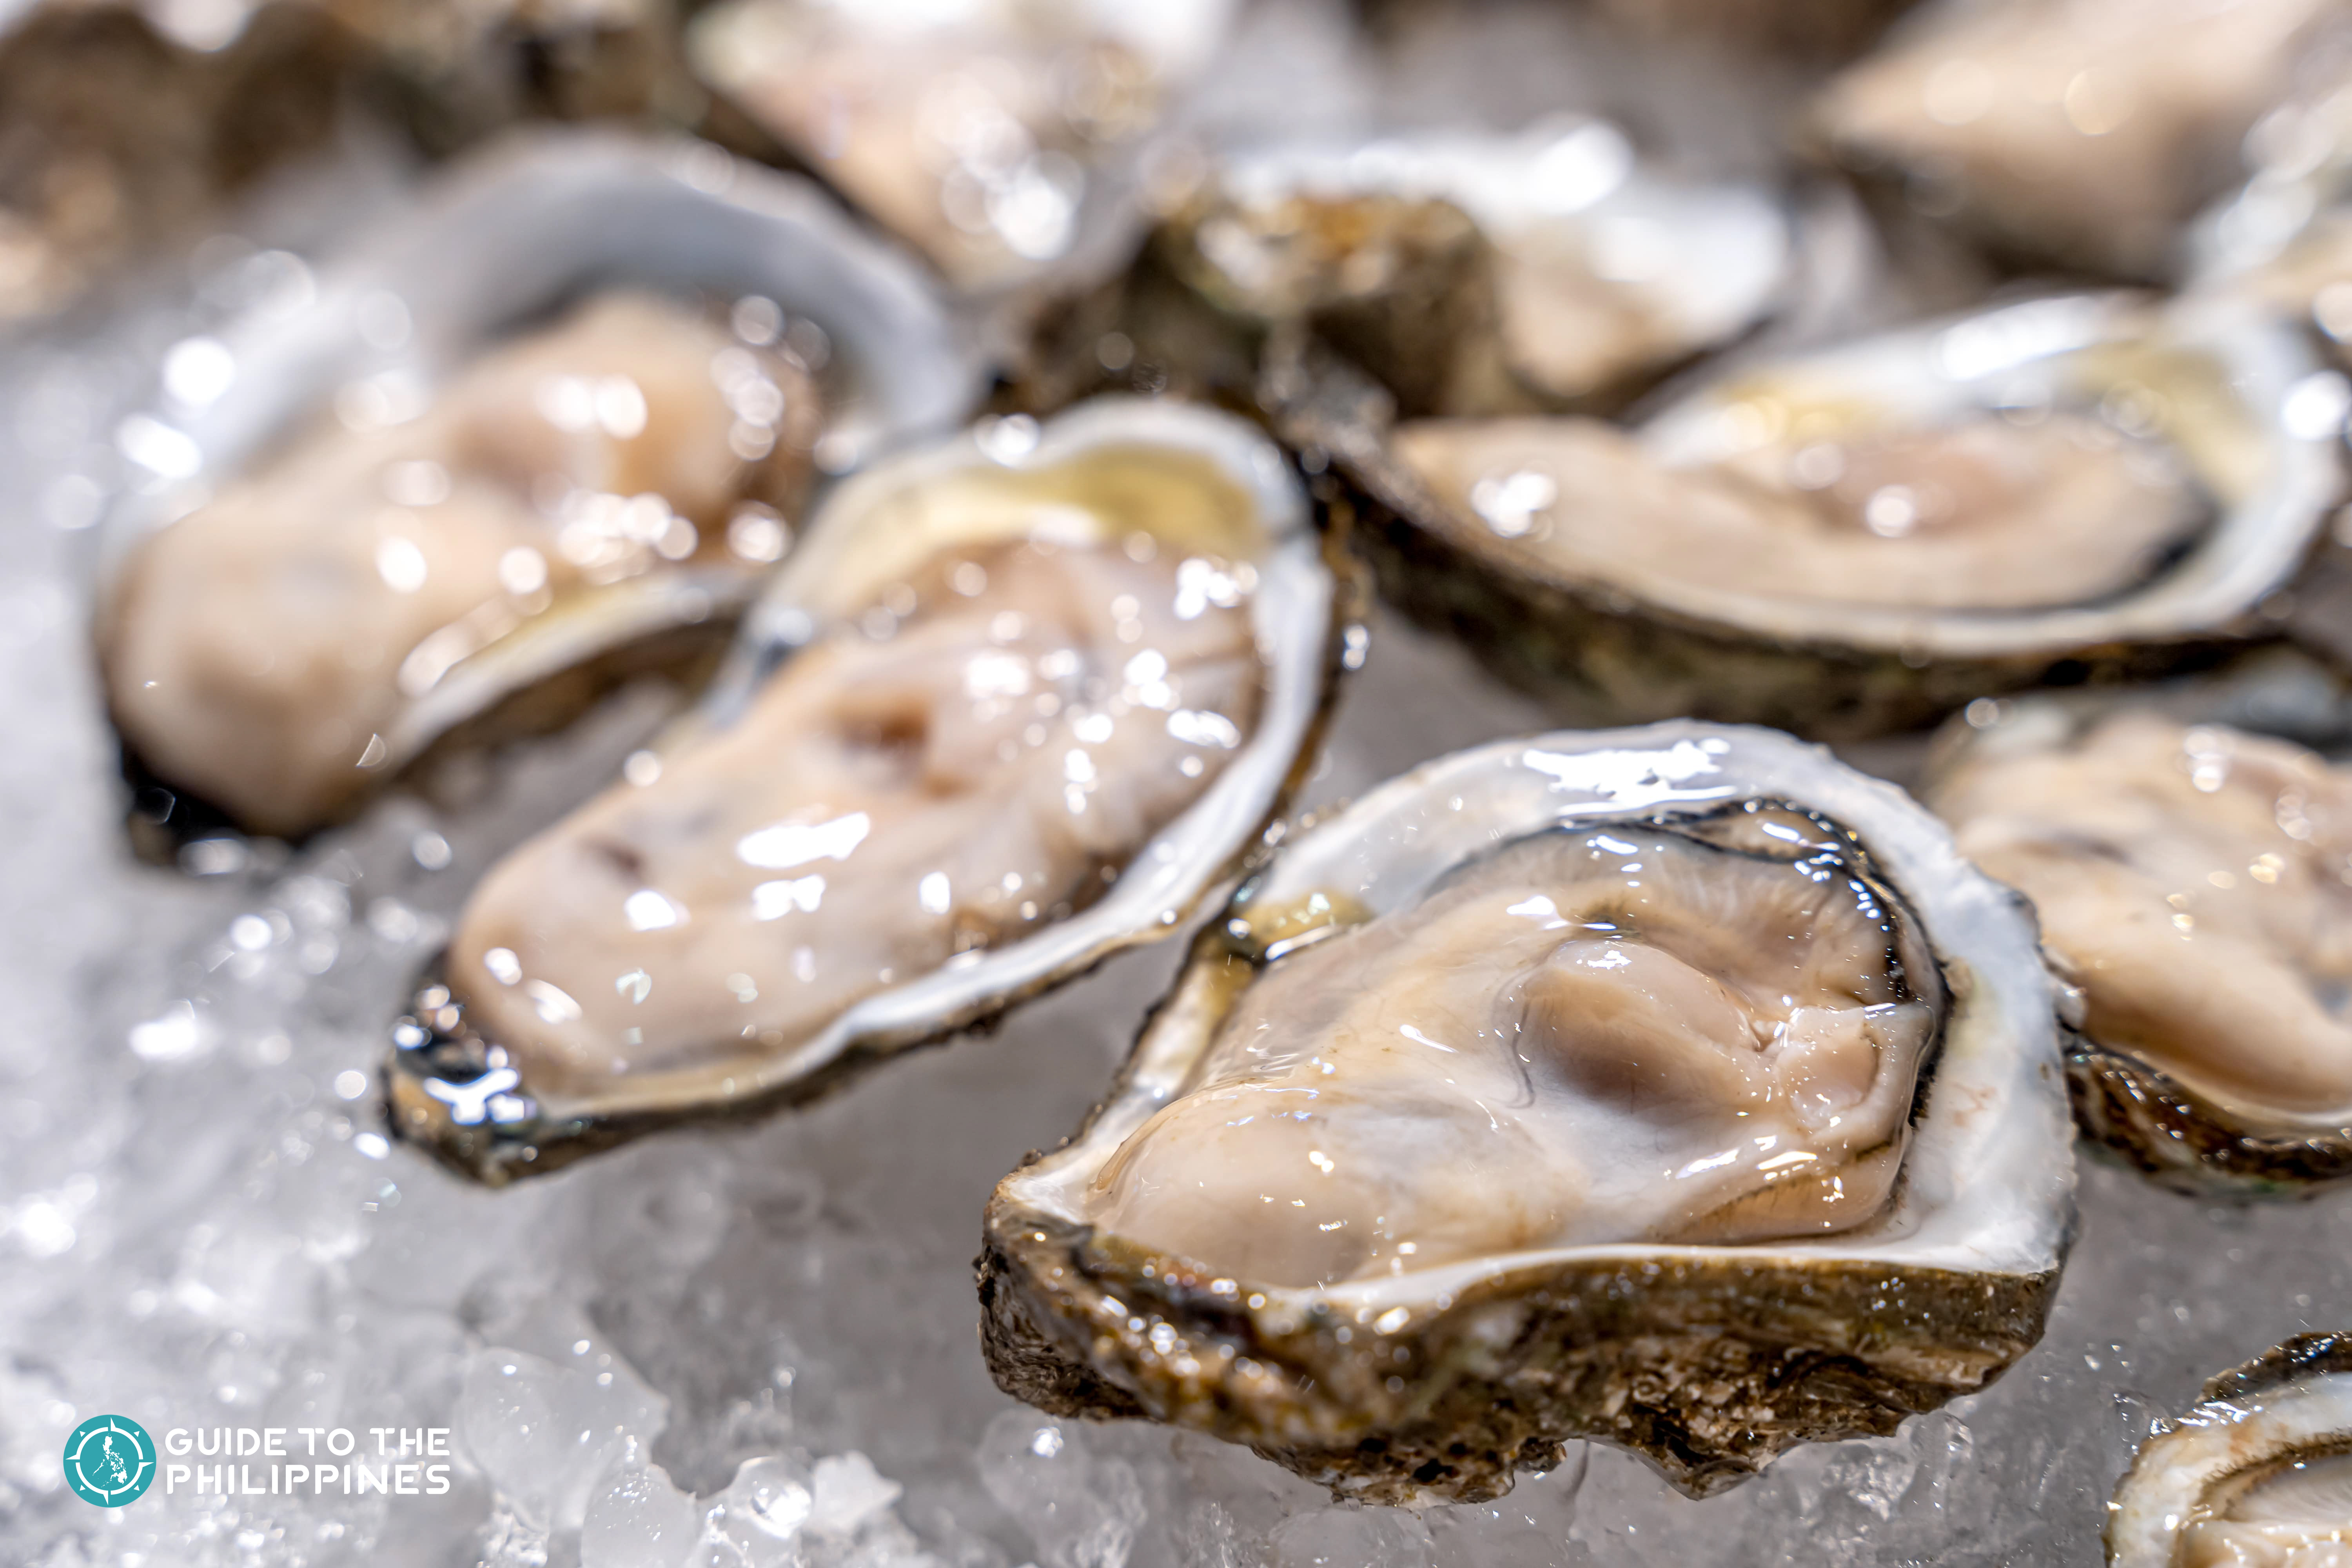 Fresh oysters in Cambuhat Oyster Farm